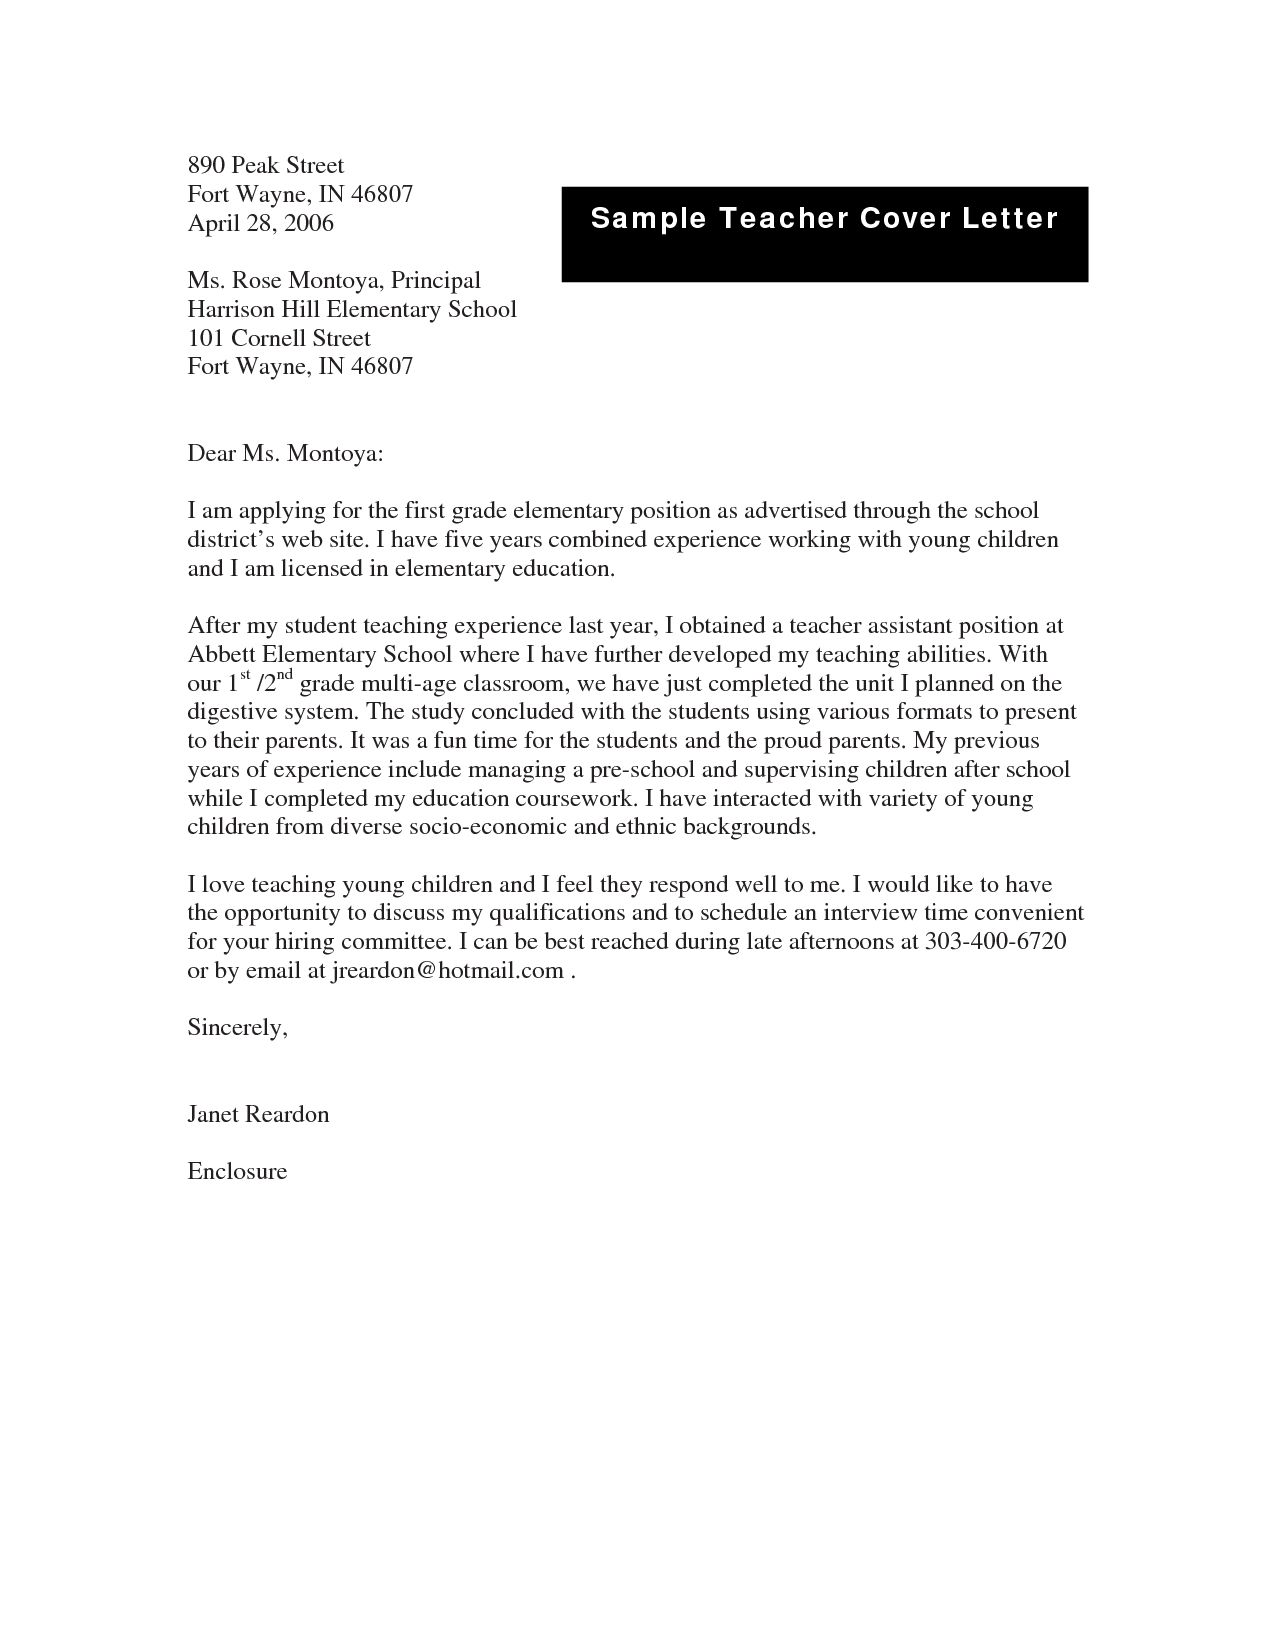 Education Cover Letter Template from i.pinimg.com